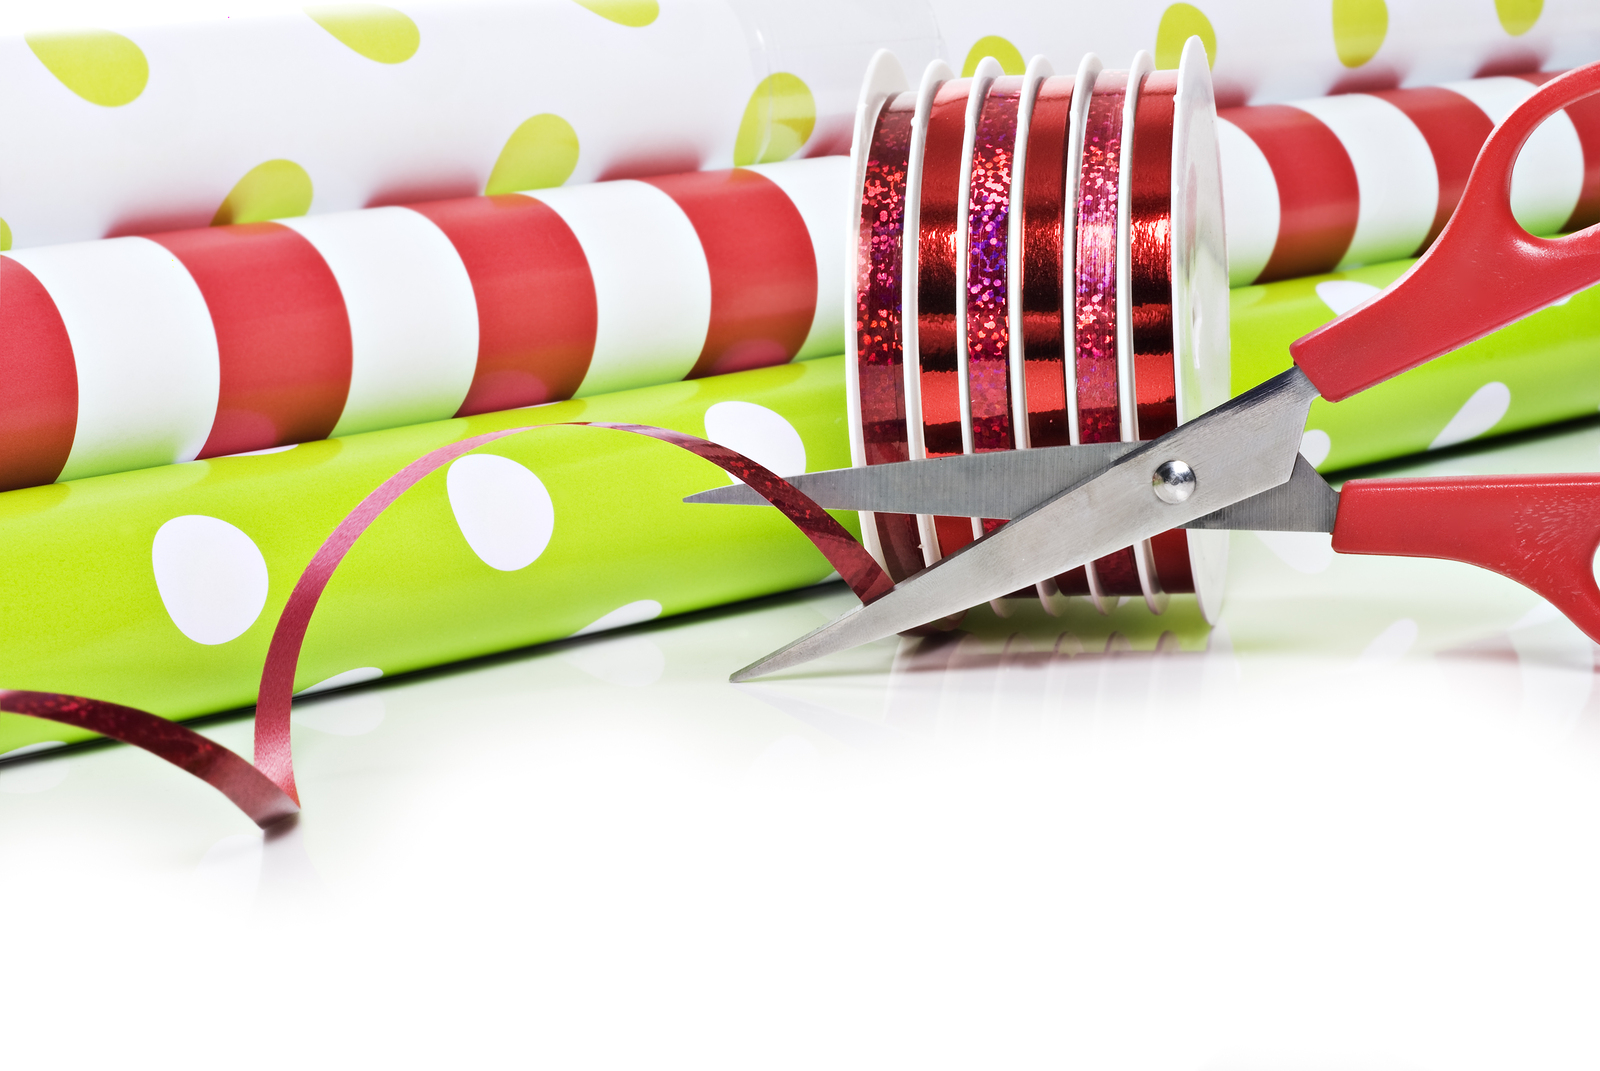 bigstock-Rolls-of-gift-wrapping-paper-a-38616913.jpg